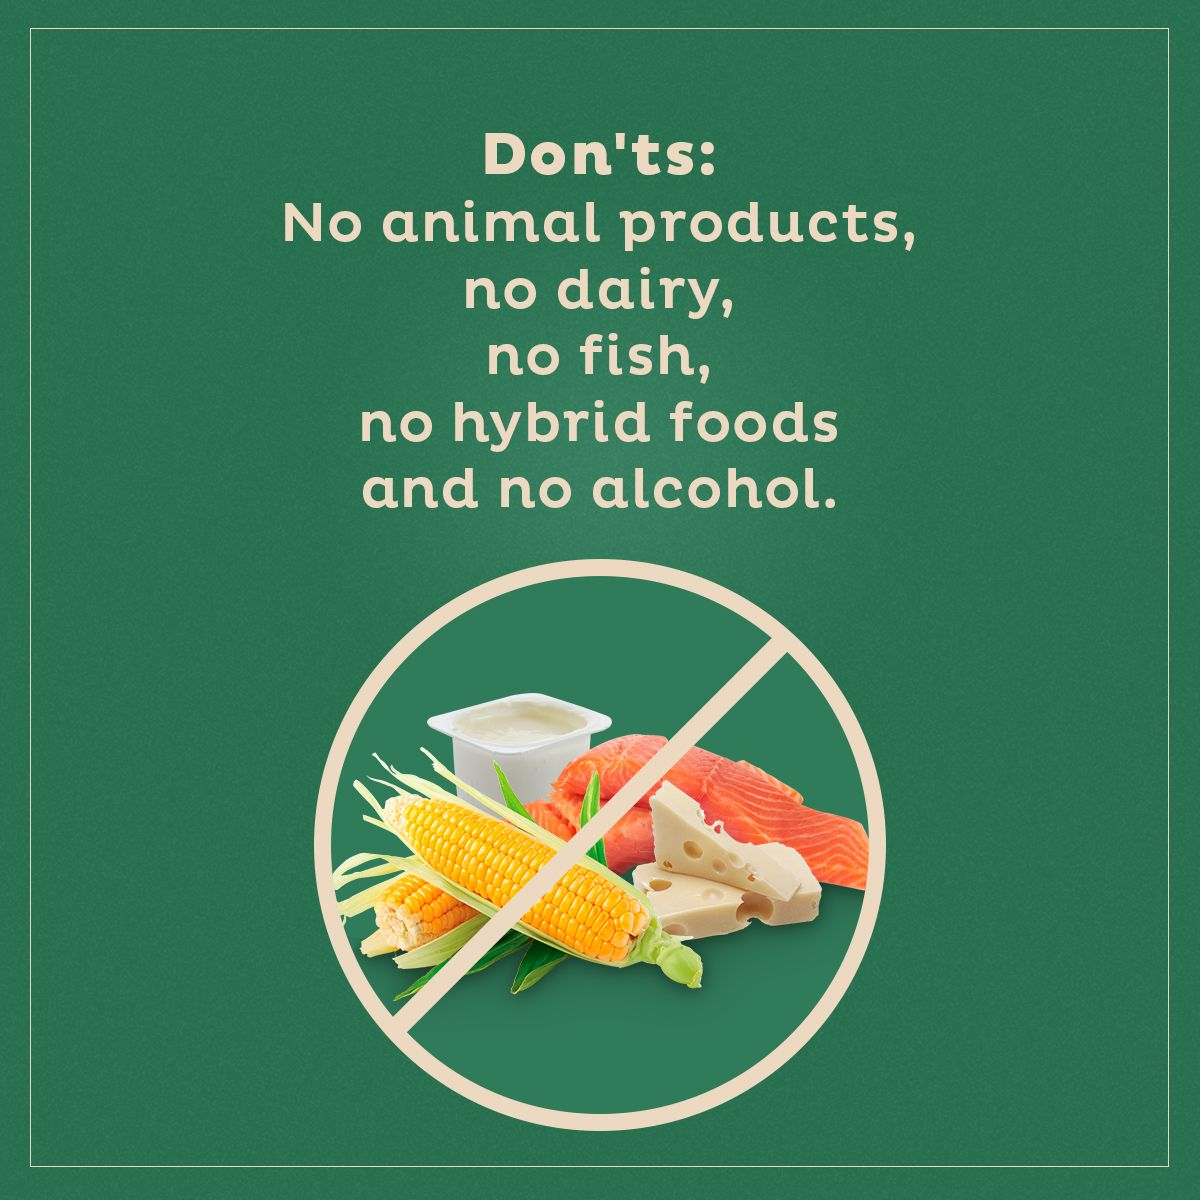 Don'ts: No animal products, no dairy, no fish, no hybrid foods and no alcohol.